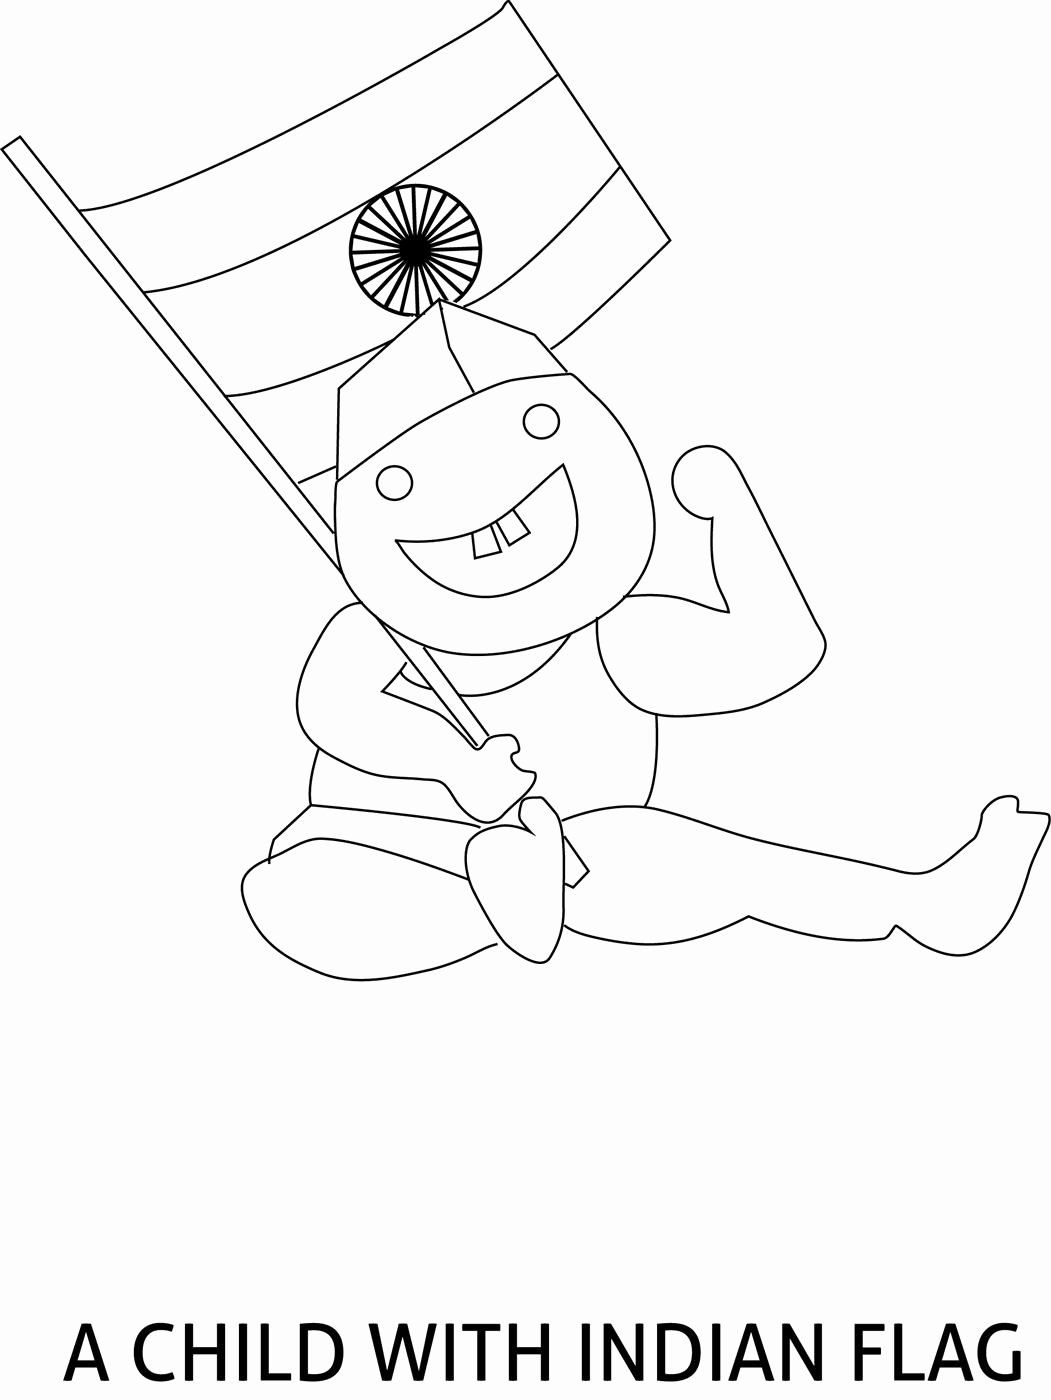 India Flag Coloring Page Lovely India Flag Coloring Page At